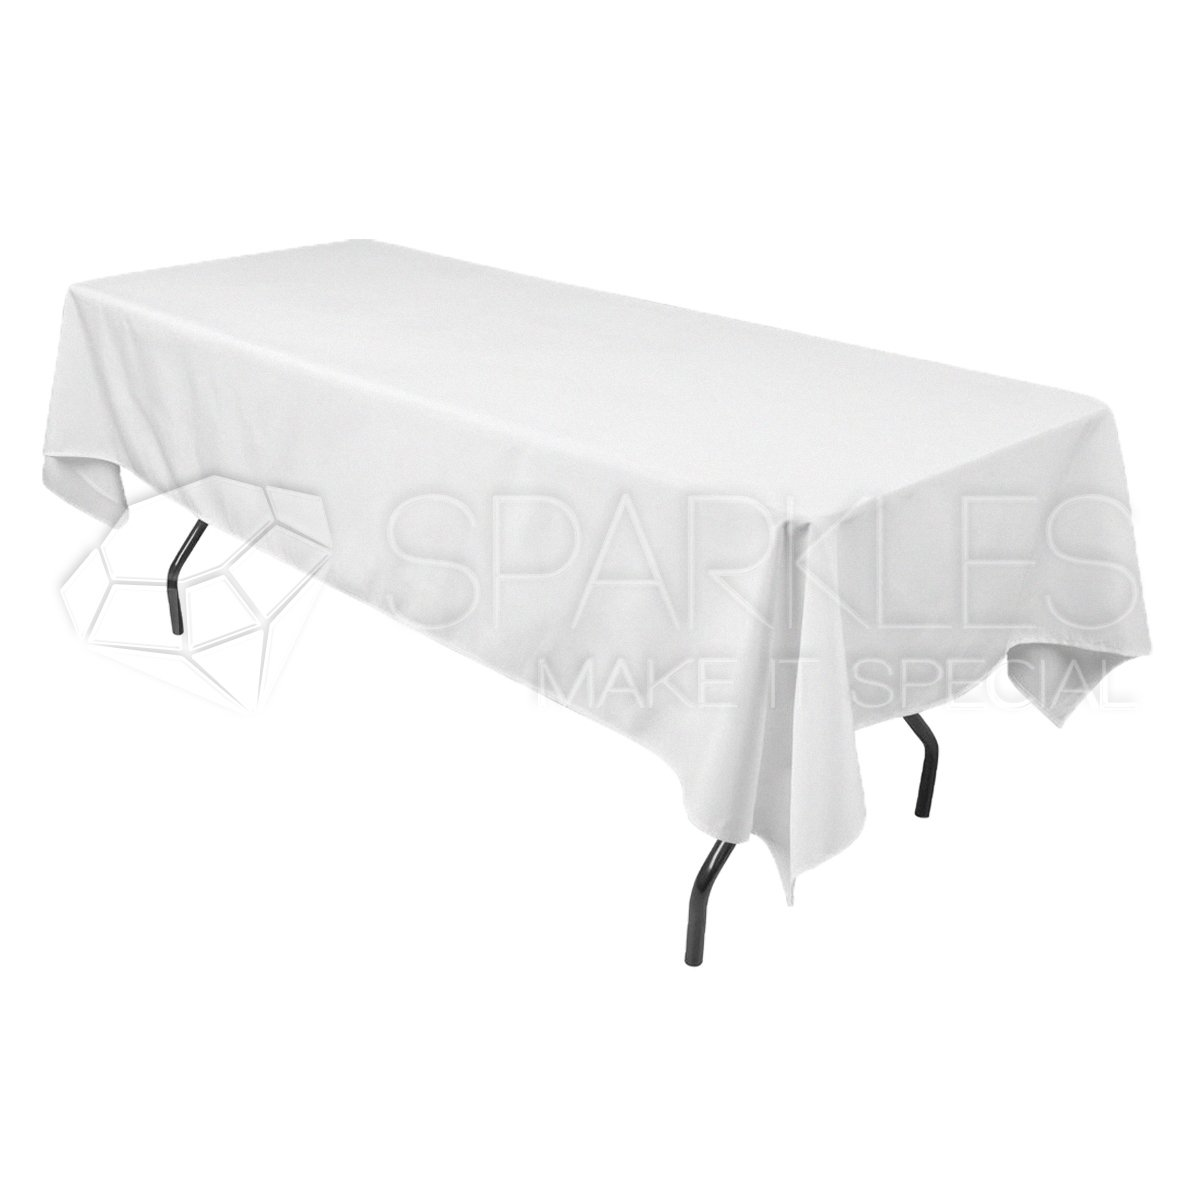 Sparkles Make It Special 10-pcs 60'' x 126'' Inch Rectangular Polyester Cloth Fabric Linen Tablecloth - Wedding Reception Restaurant Banquet Party - Machine Washable - Choice of Color - White